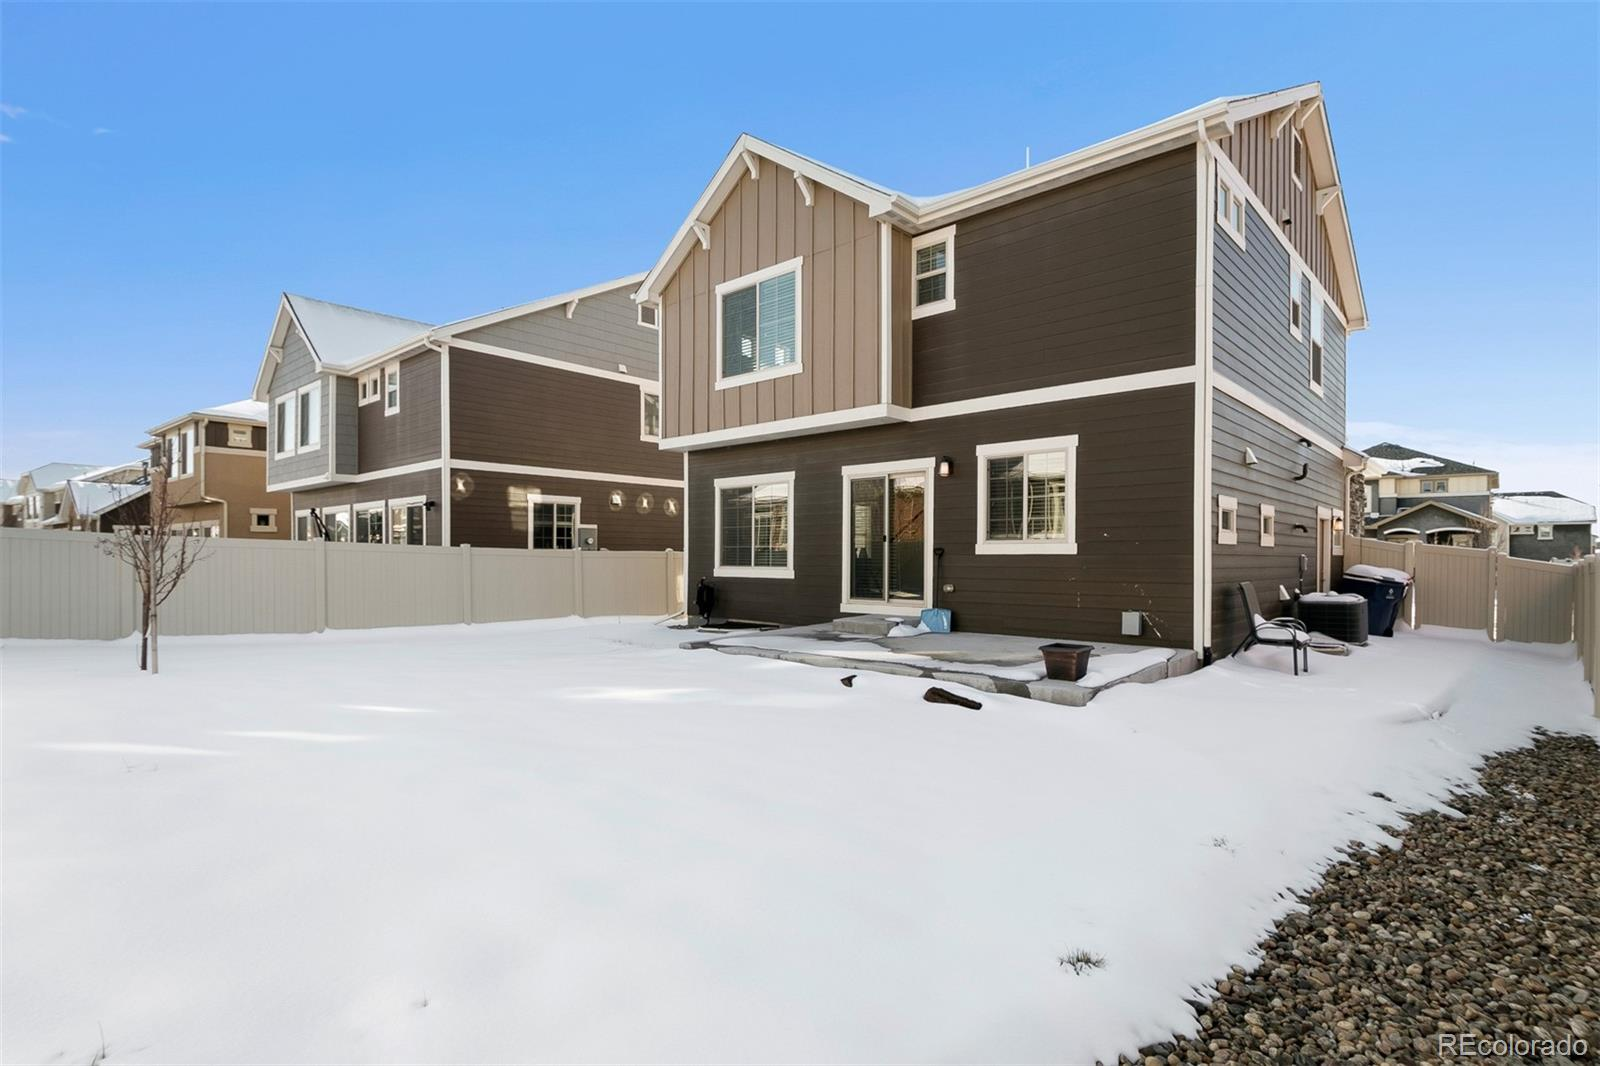 MLS# 6282621 - 34 - 211 Pear Lake Way, Erie, CO 80516